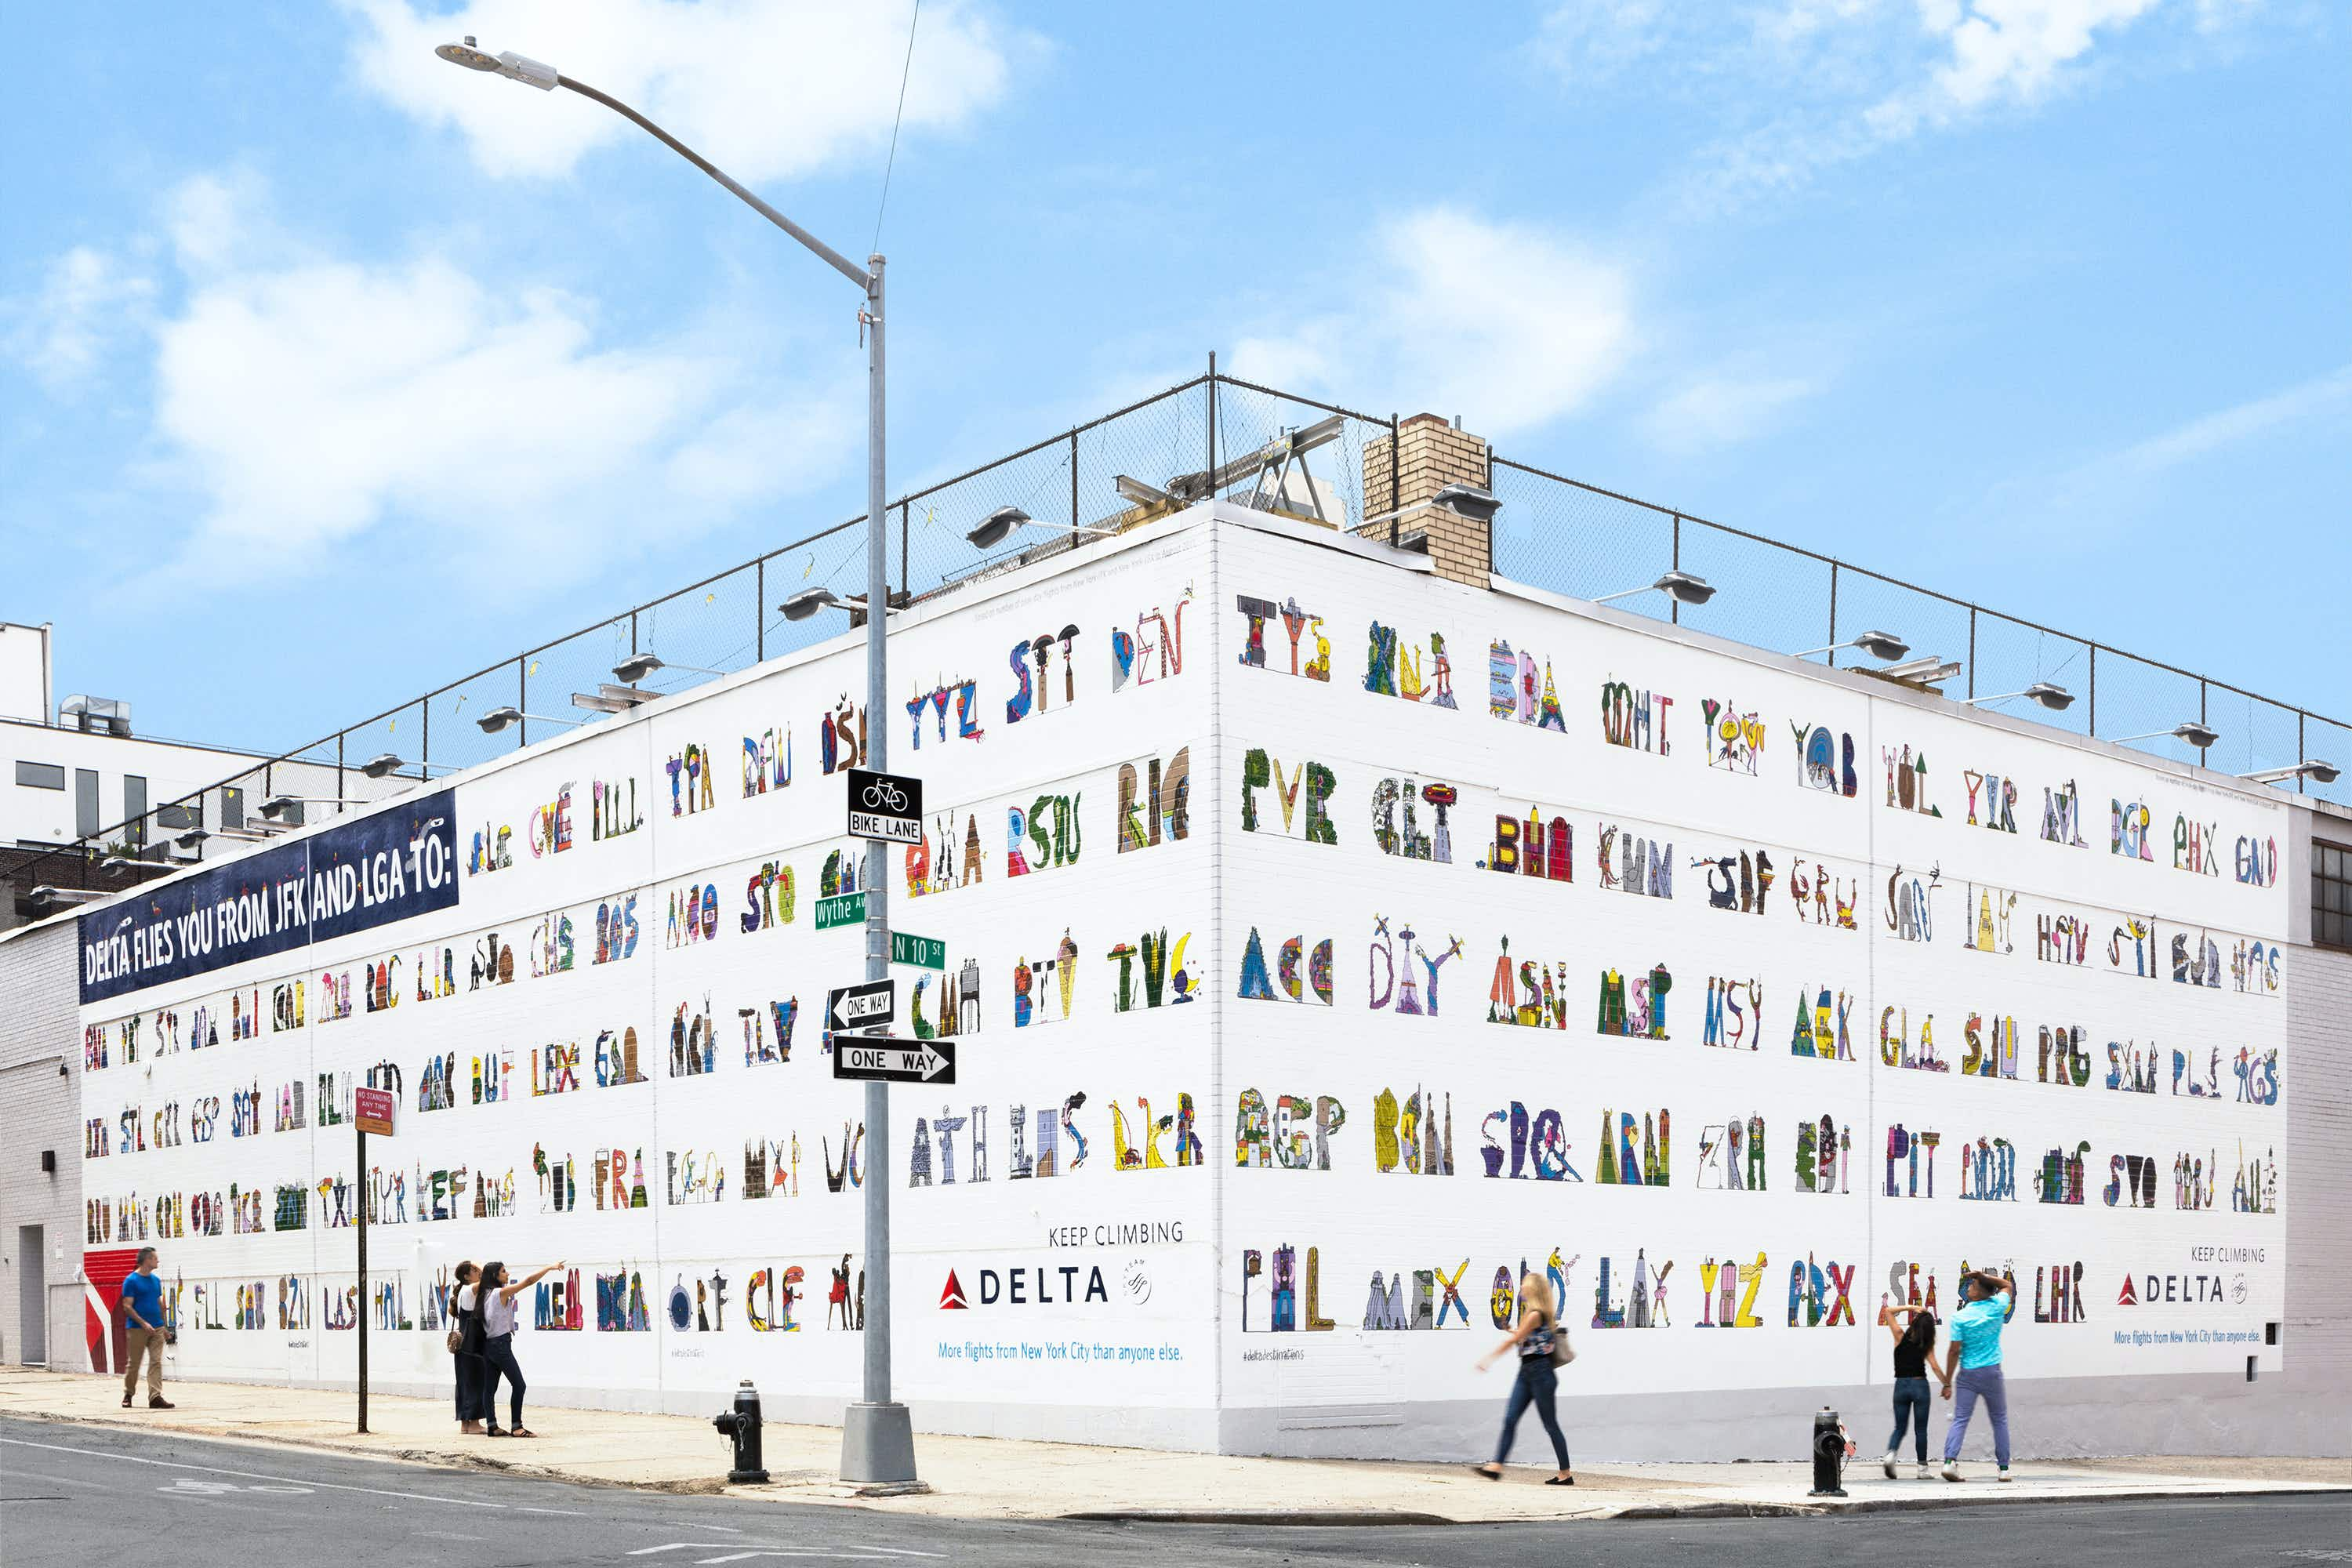 Delta replaces its dating wall in Brooklyn with cool airport codes street art